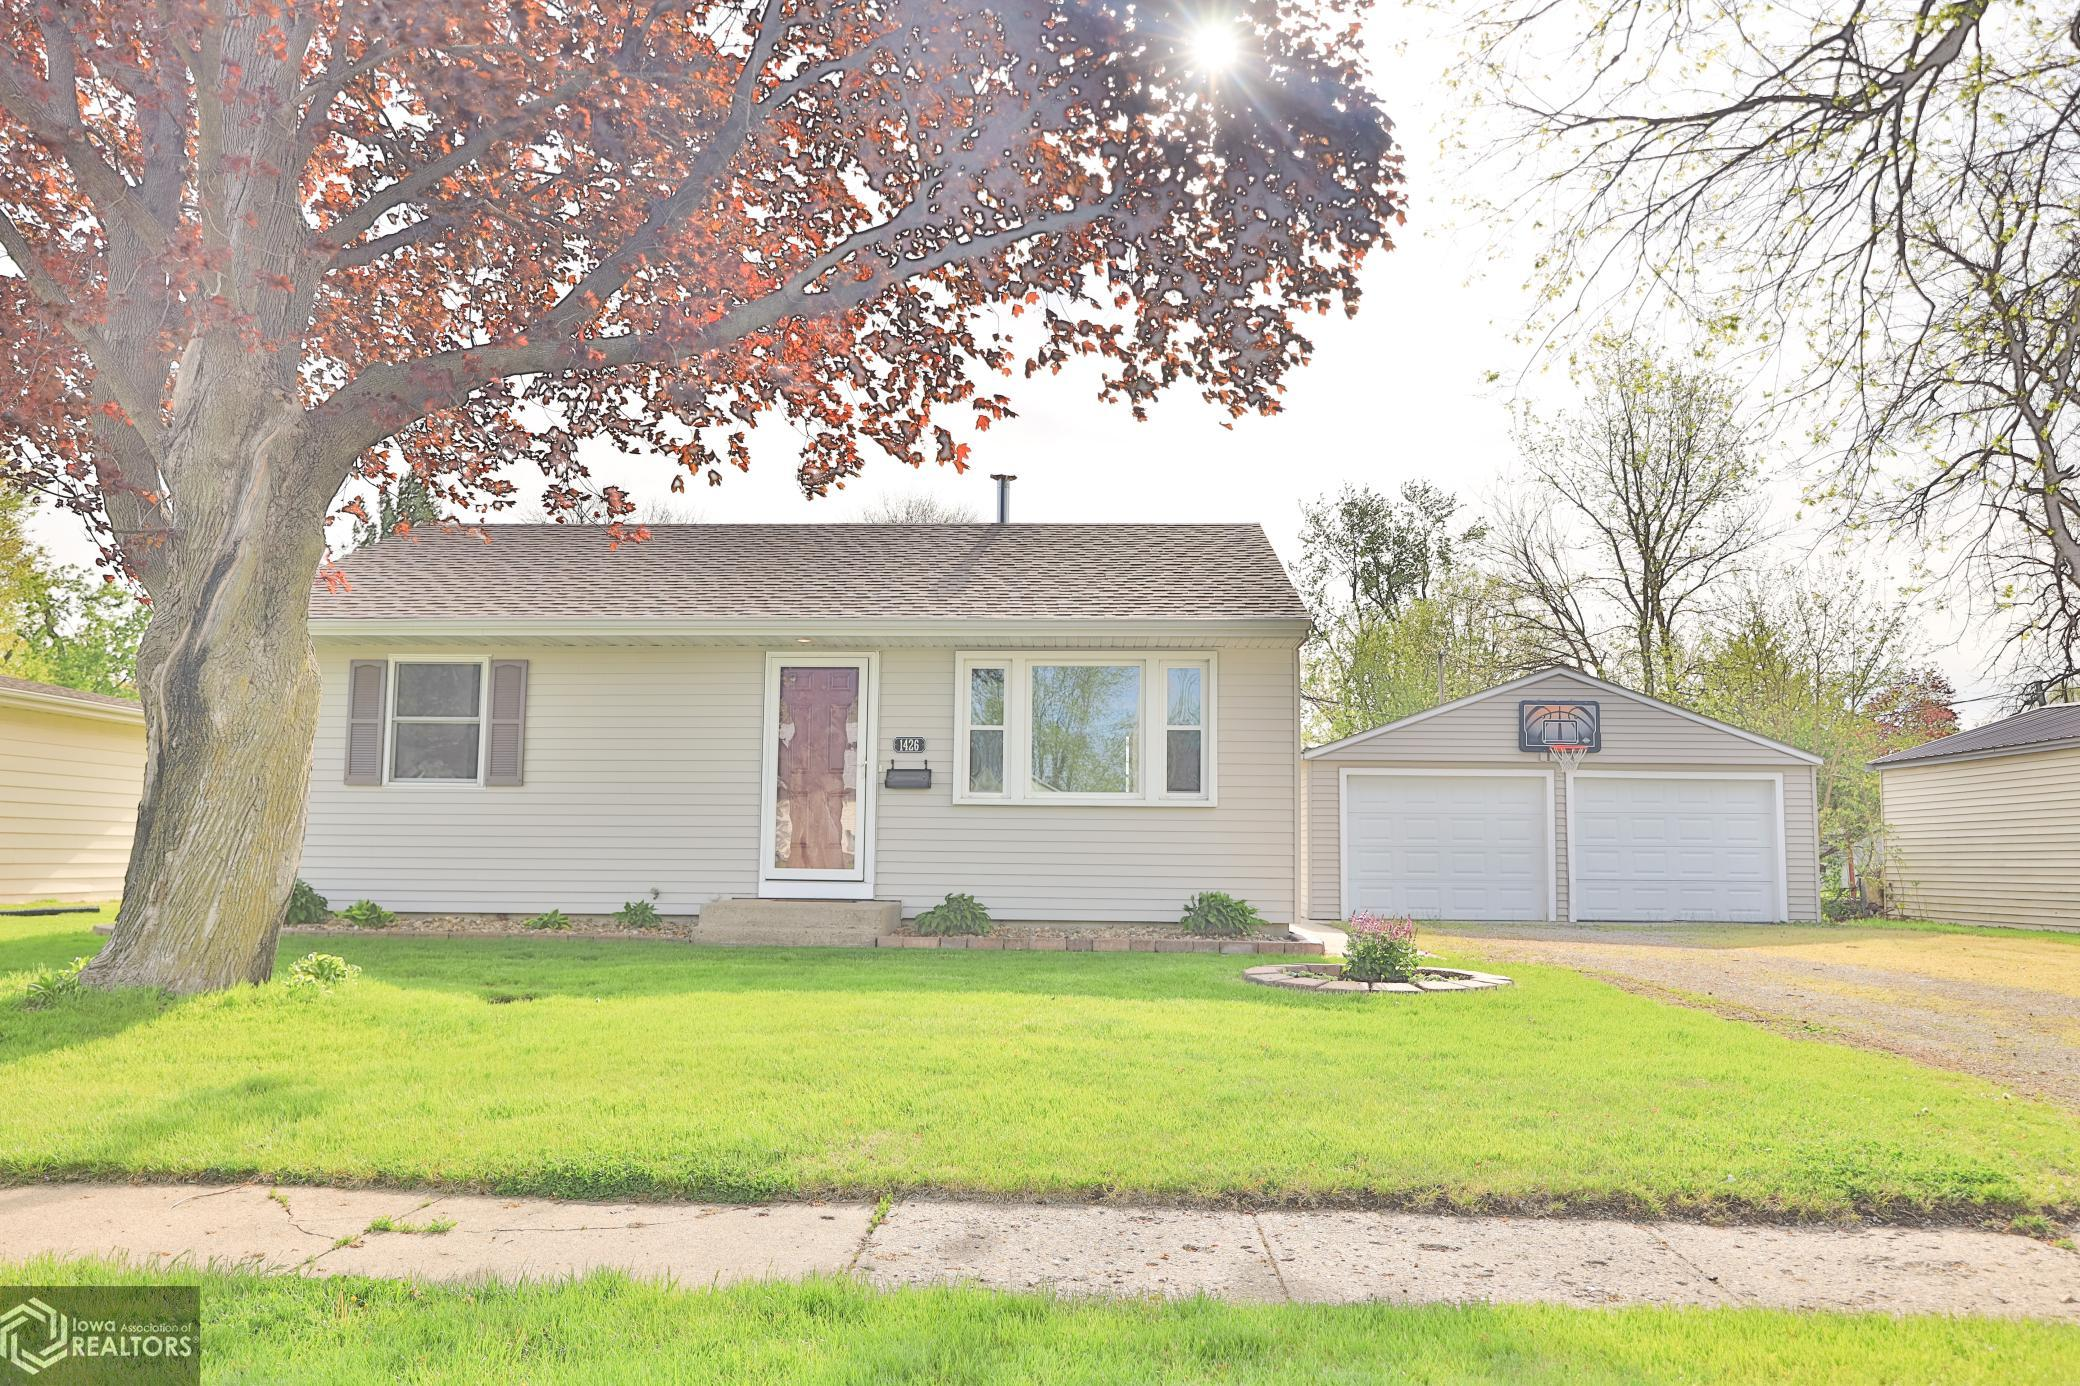 1426 Prince, Grinnell, Iowa 50112-1331, 2 Bedrooms Bedrooms, ,1 BathroomBathrooms,Single Family,For Sale,Prince,5751519